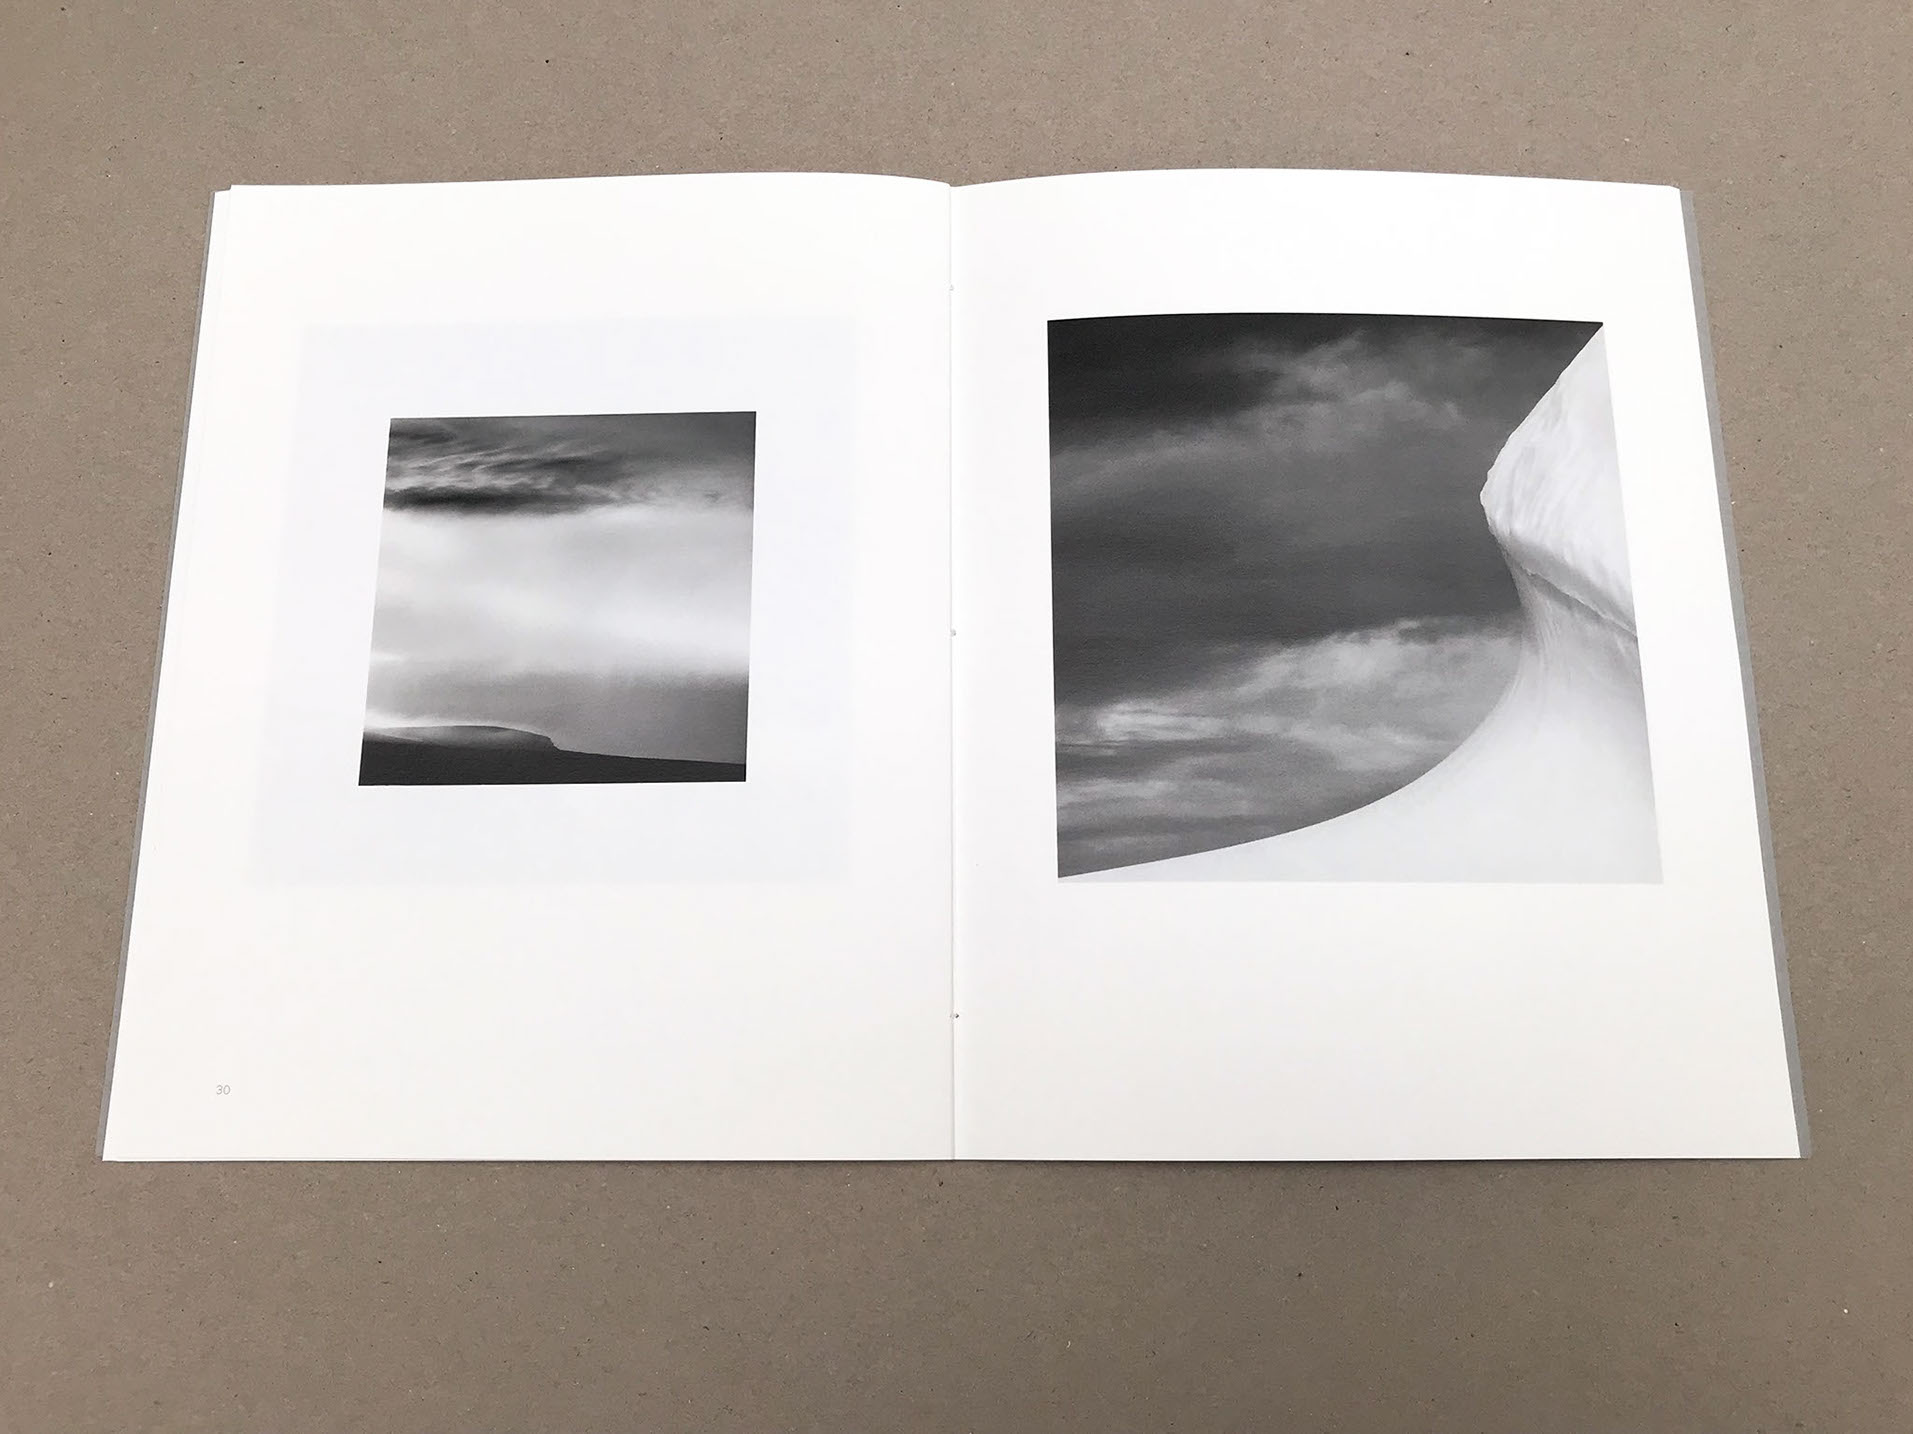 ON ICE - A monochrome photography book by Patrick Kaye